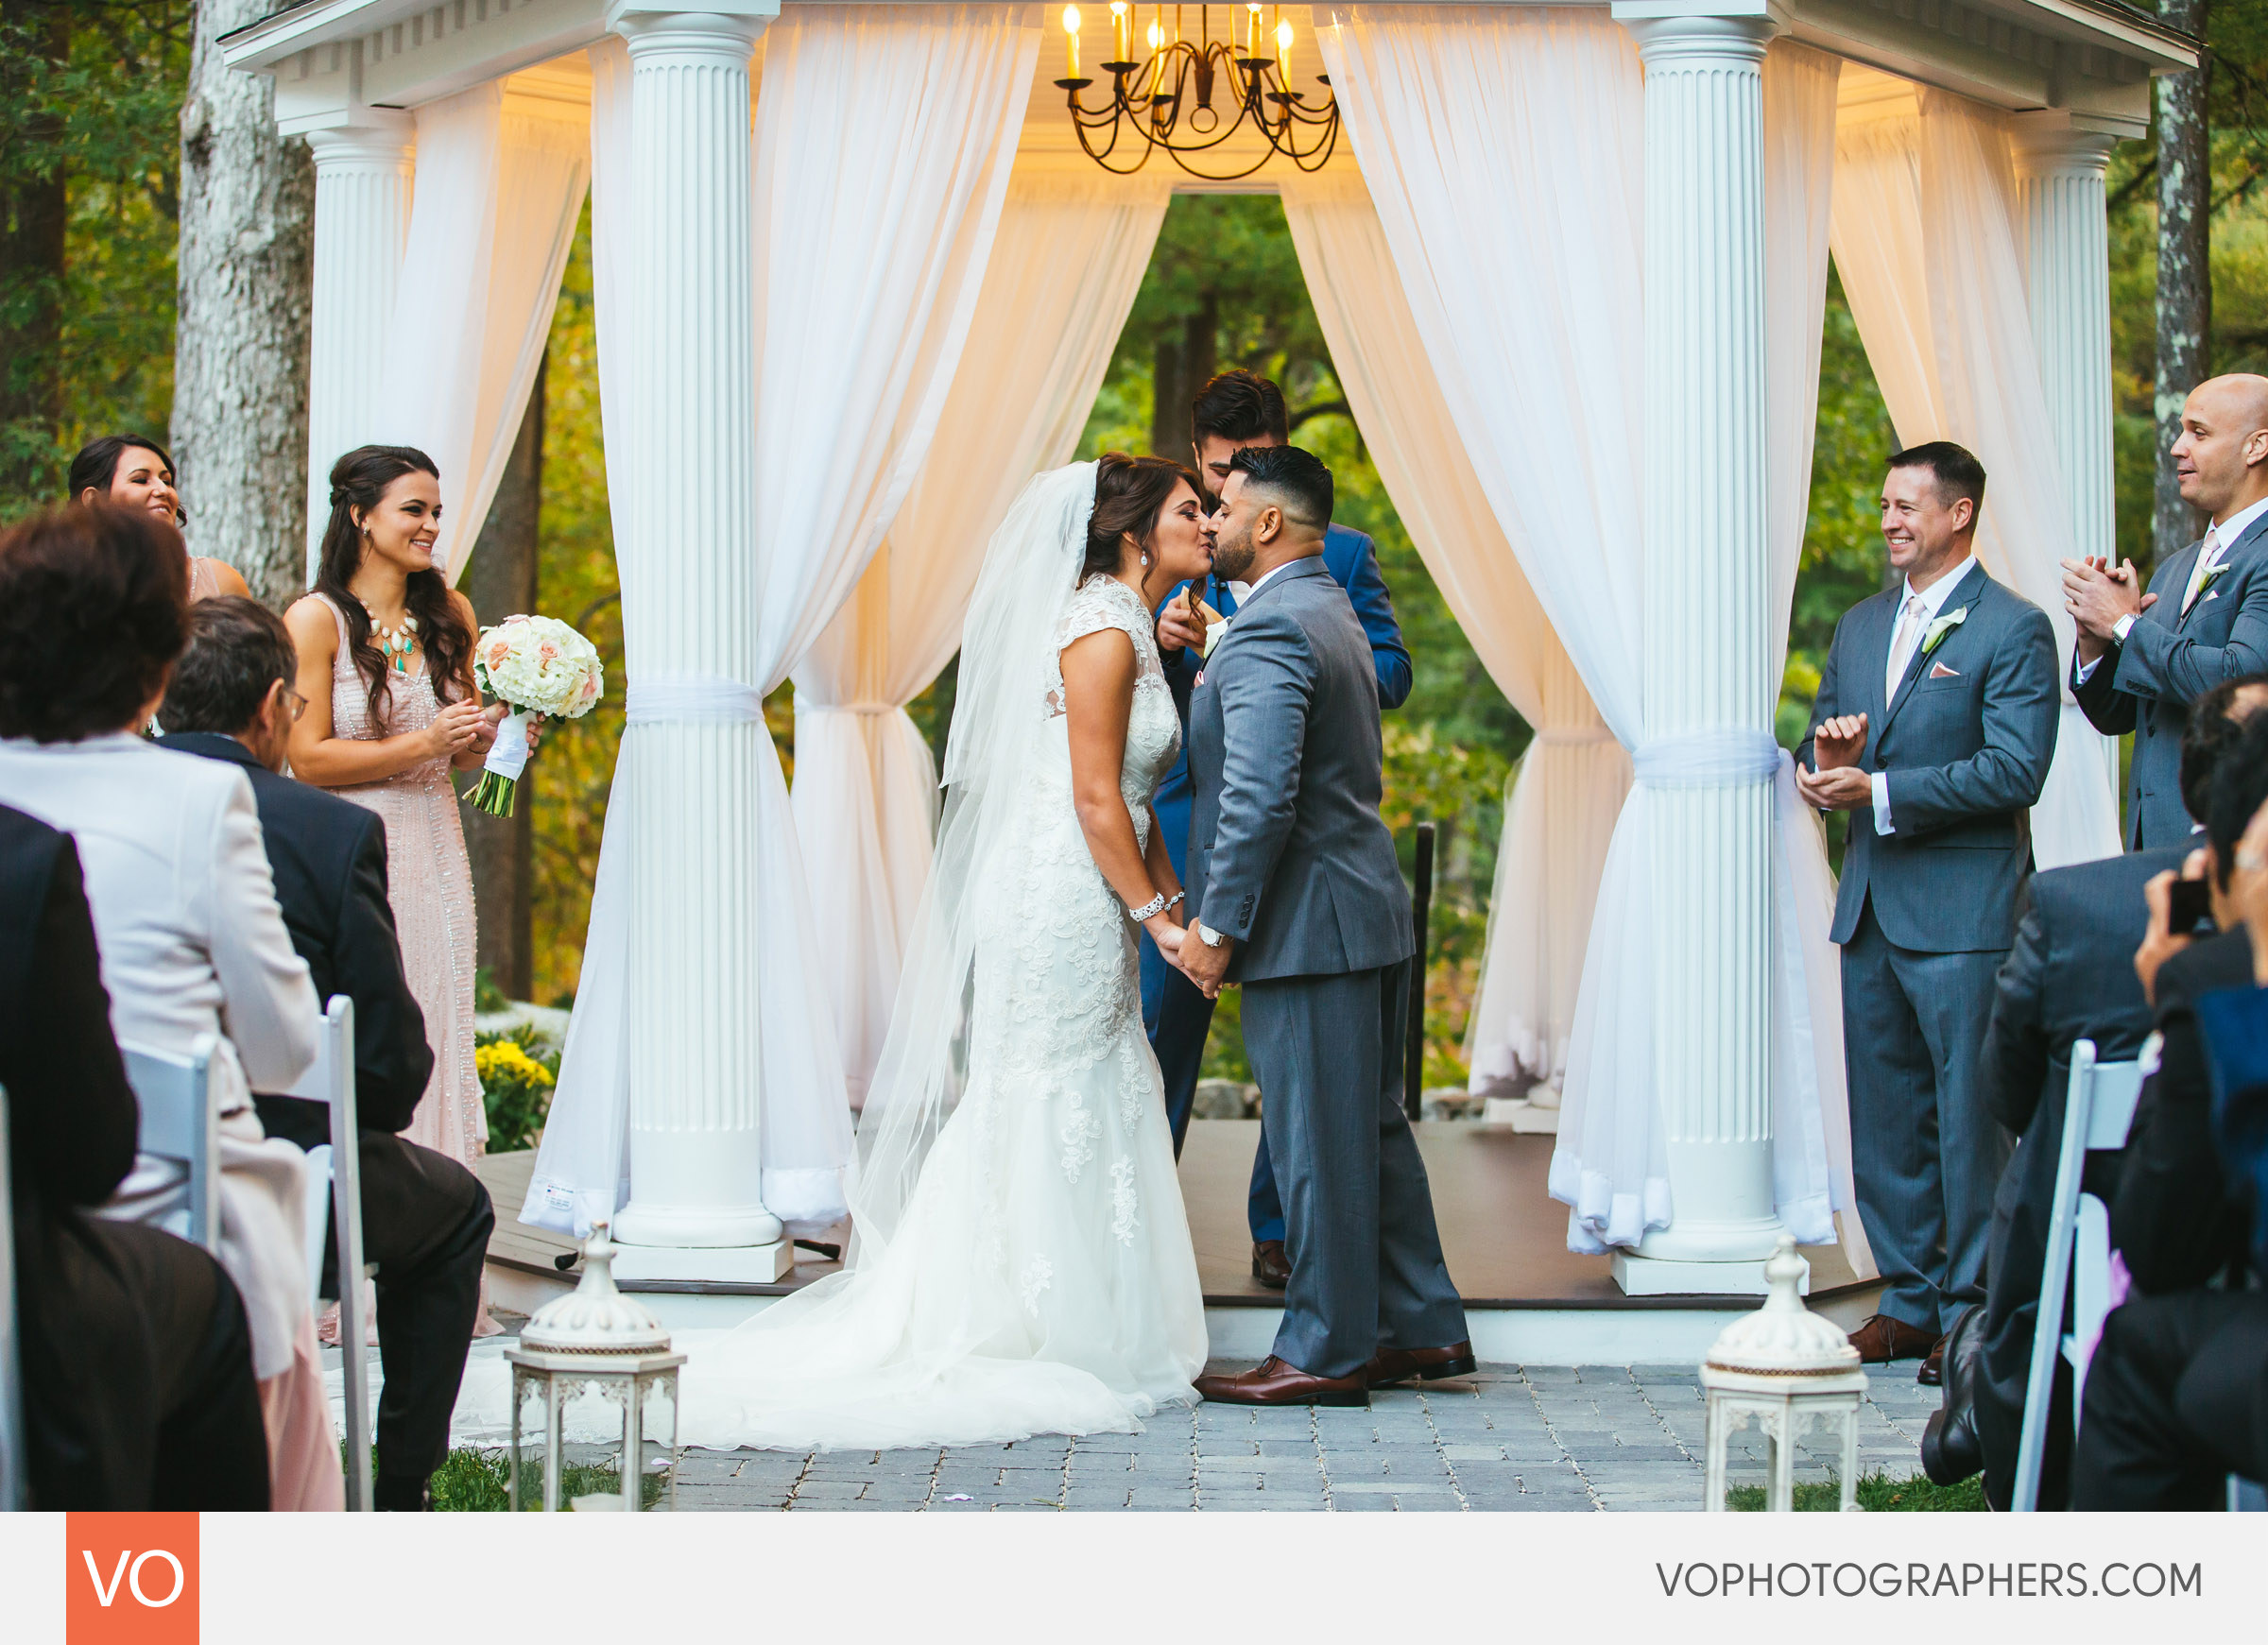 Oriana-Barem-Lakeview-Pavilion-Wedding-0030